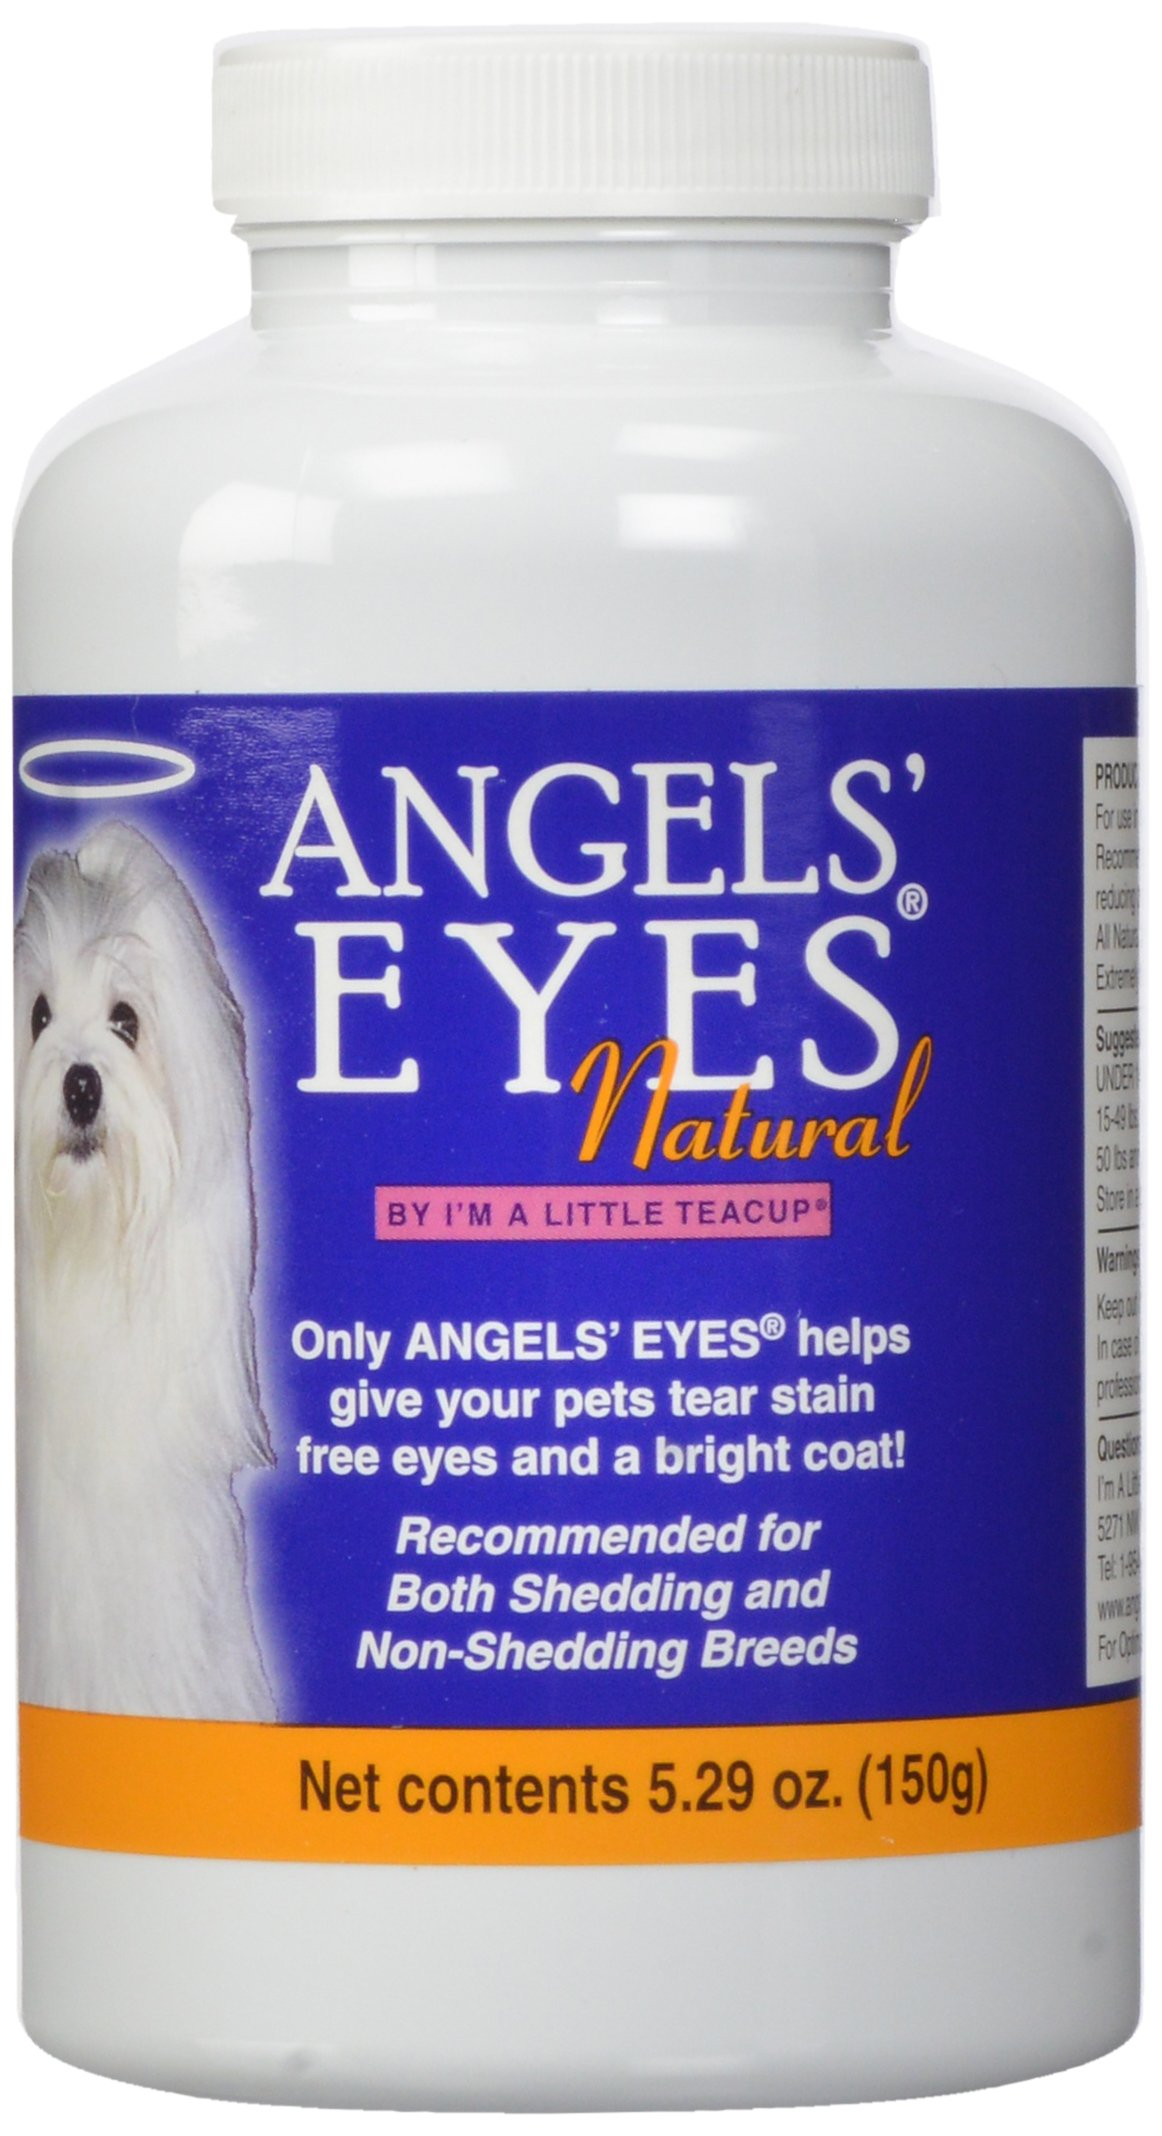 ANGELS' Eyes Natural Tear Stain Eliminaton and Remover, Chicken Flavor, 300 gm by Angel's Eyes